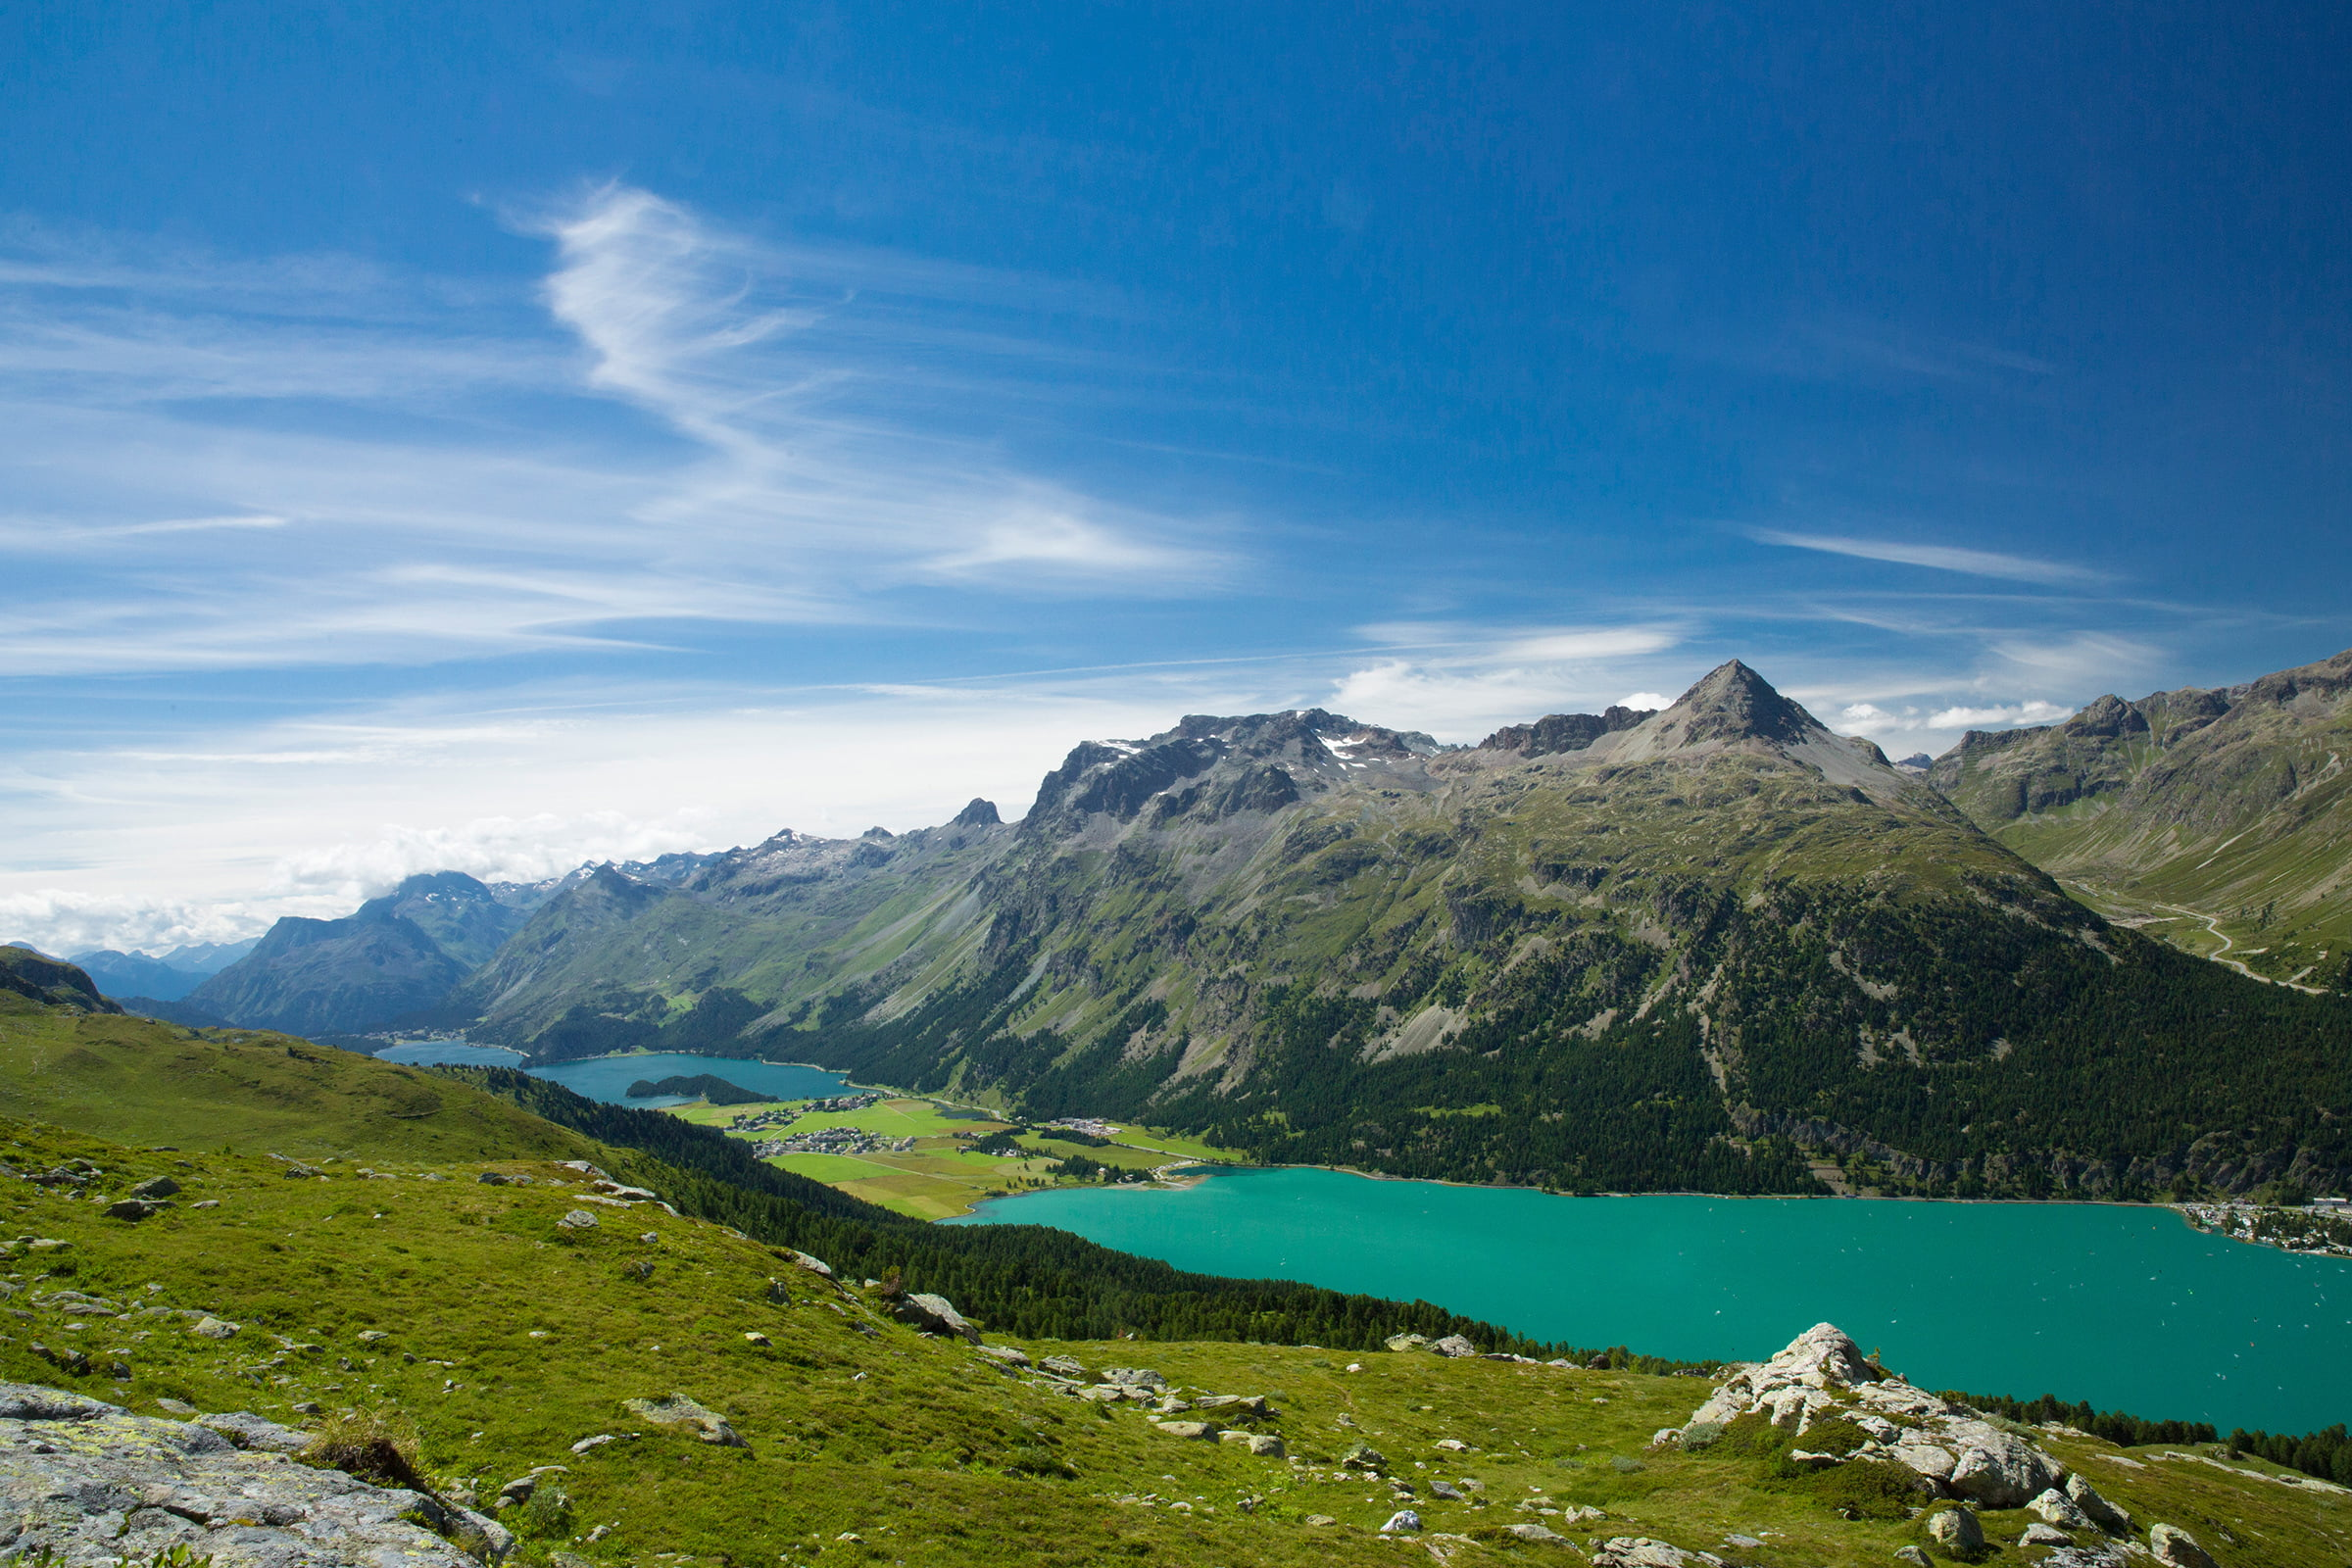 Lake Silvaplana and Lake Sils